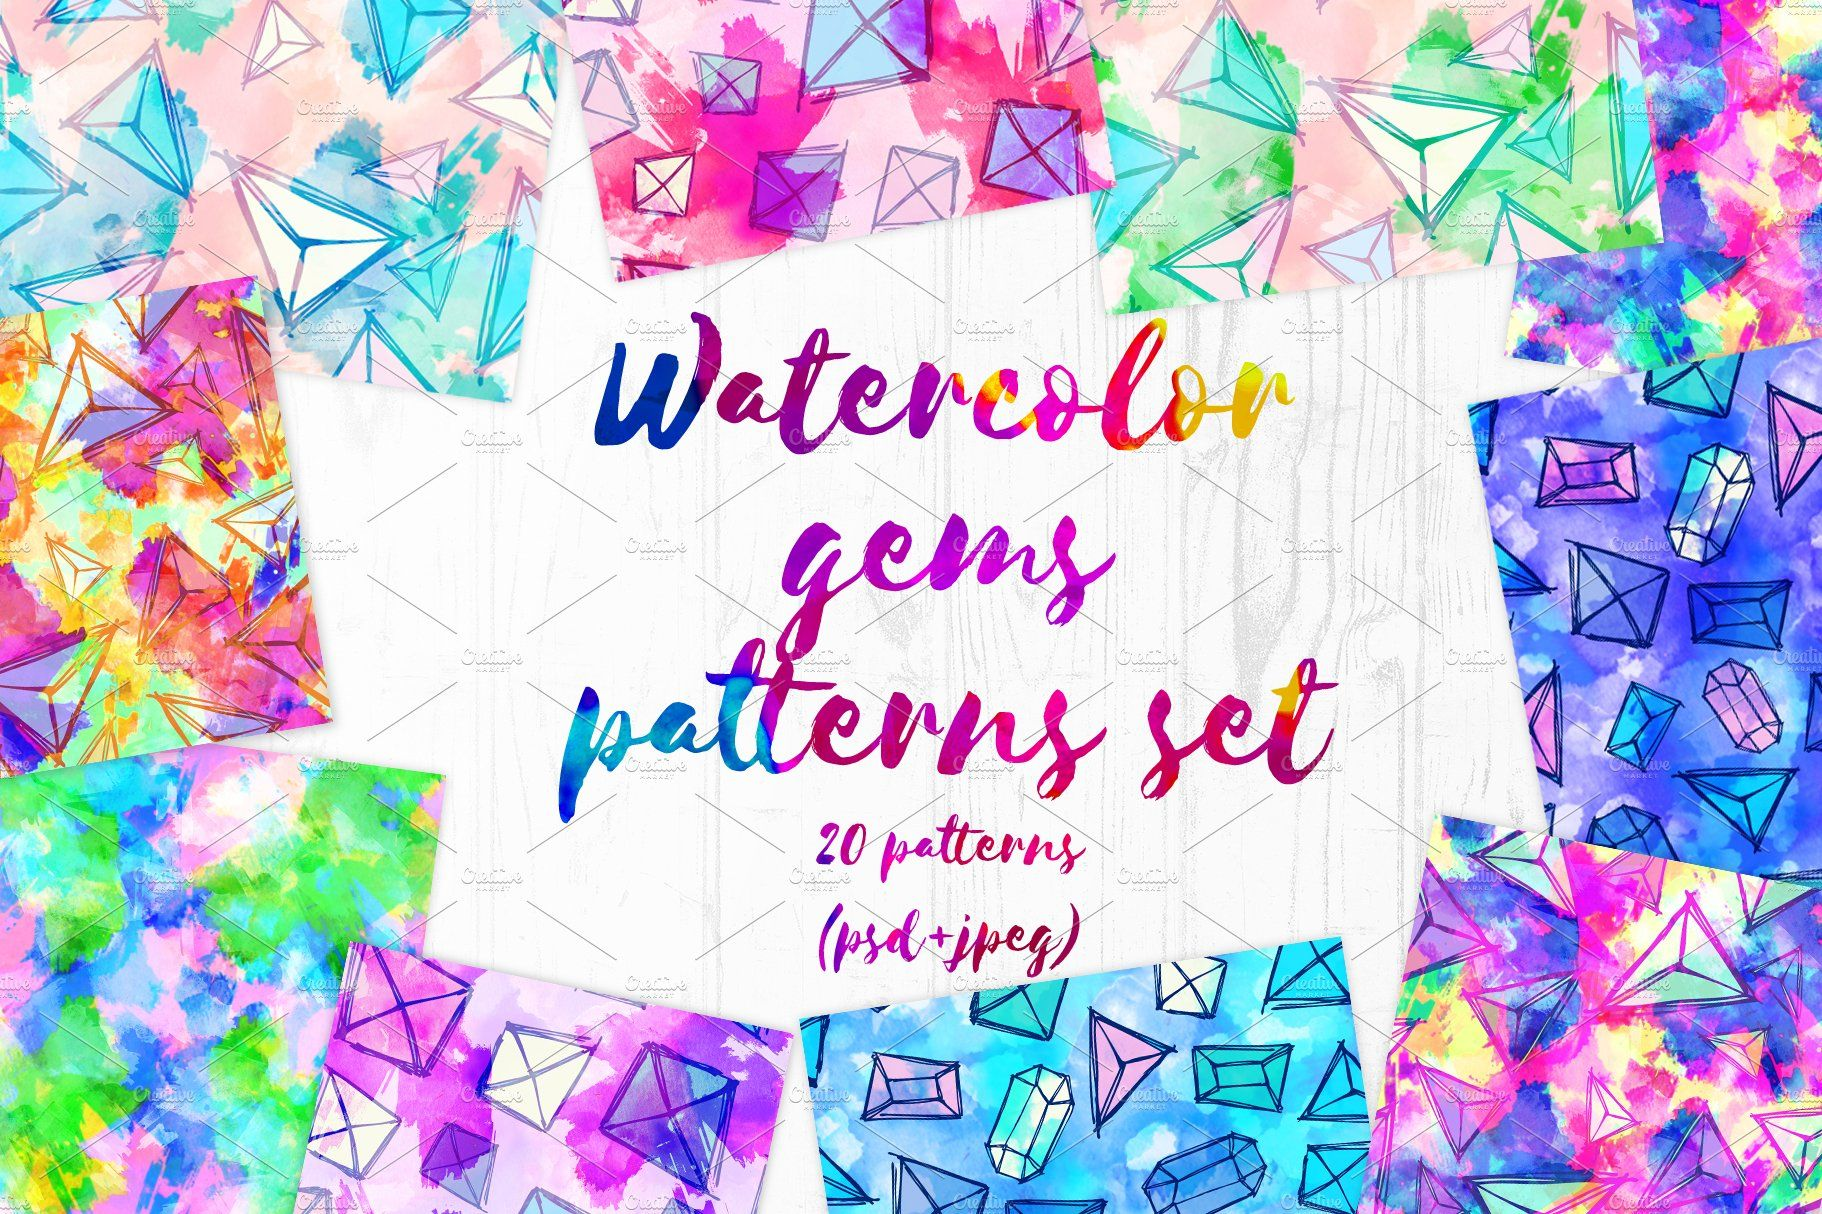 Watercolor Gems Patterns Set Sponsored Cm Height Dpi Rgb Ad